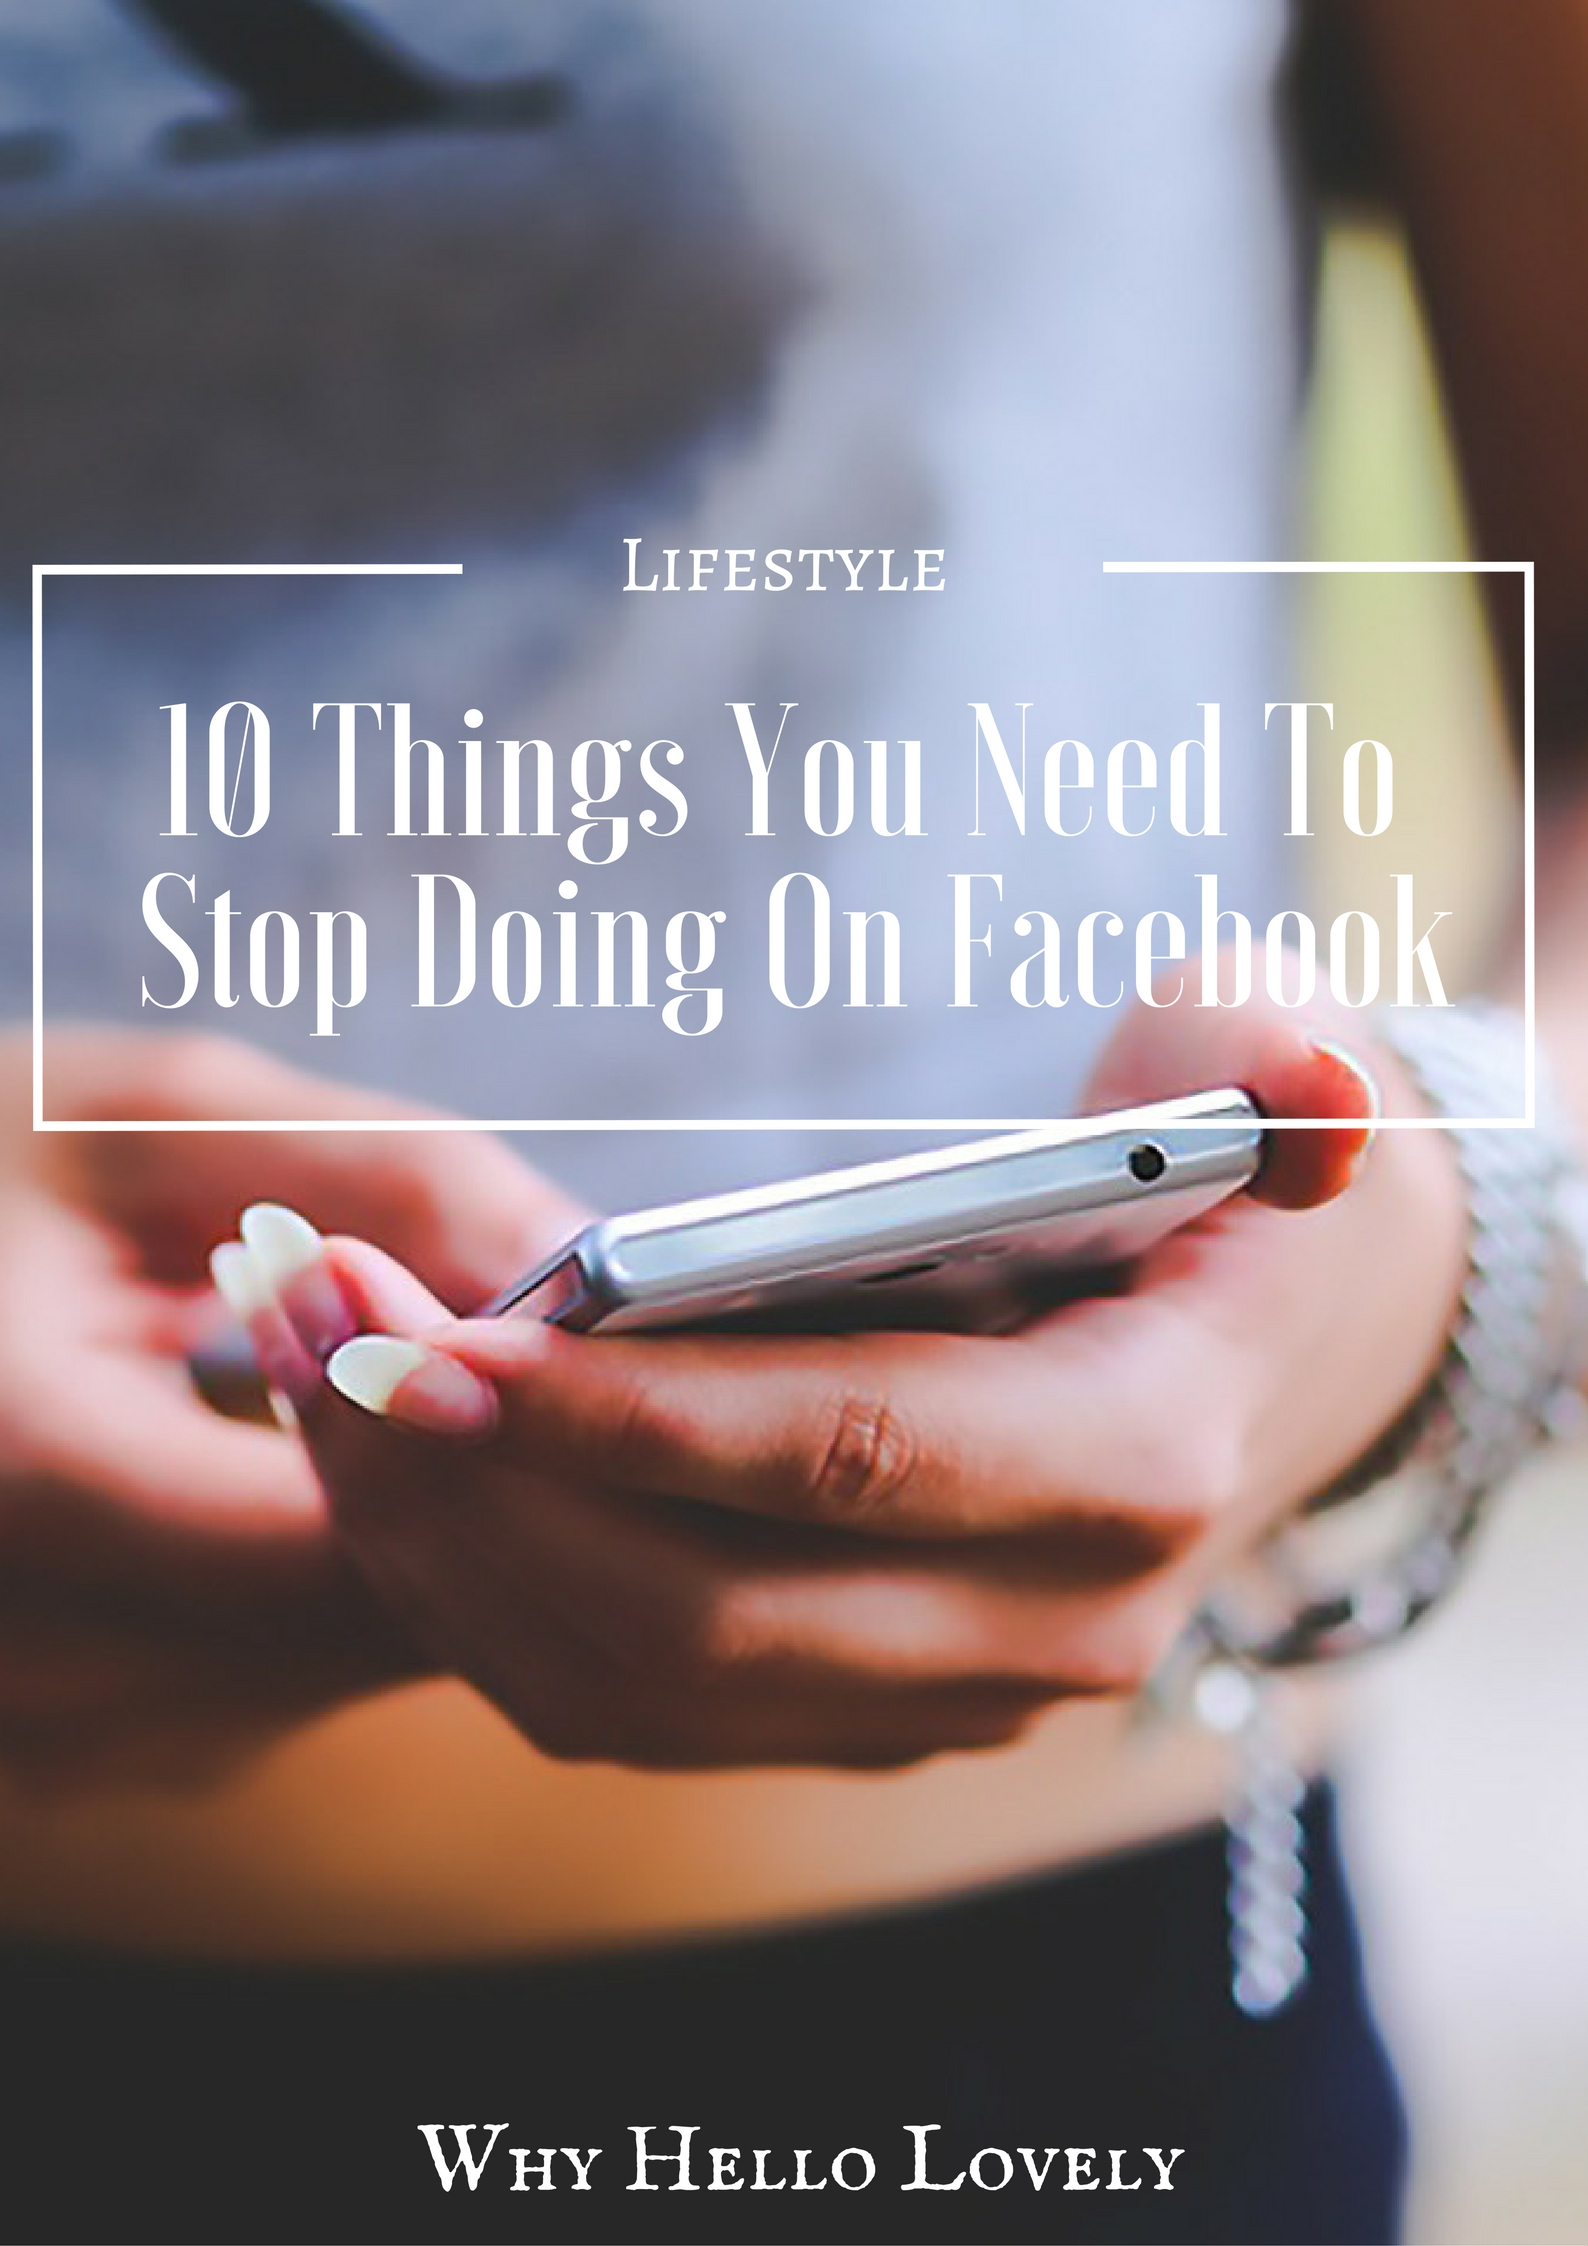 ten things to stop doing if you 10 things your gyno wants you to stop doing to your vagina we all dread these doctors appointments we are supposed to go to each year  yes, our yearly checkups are seriously a pain in the ass, especially when someone is shoving a whole hand up inside of you.